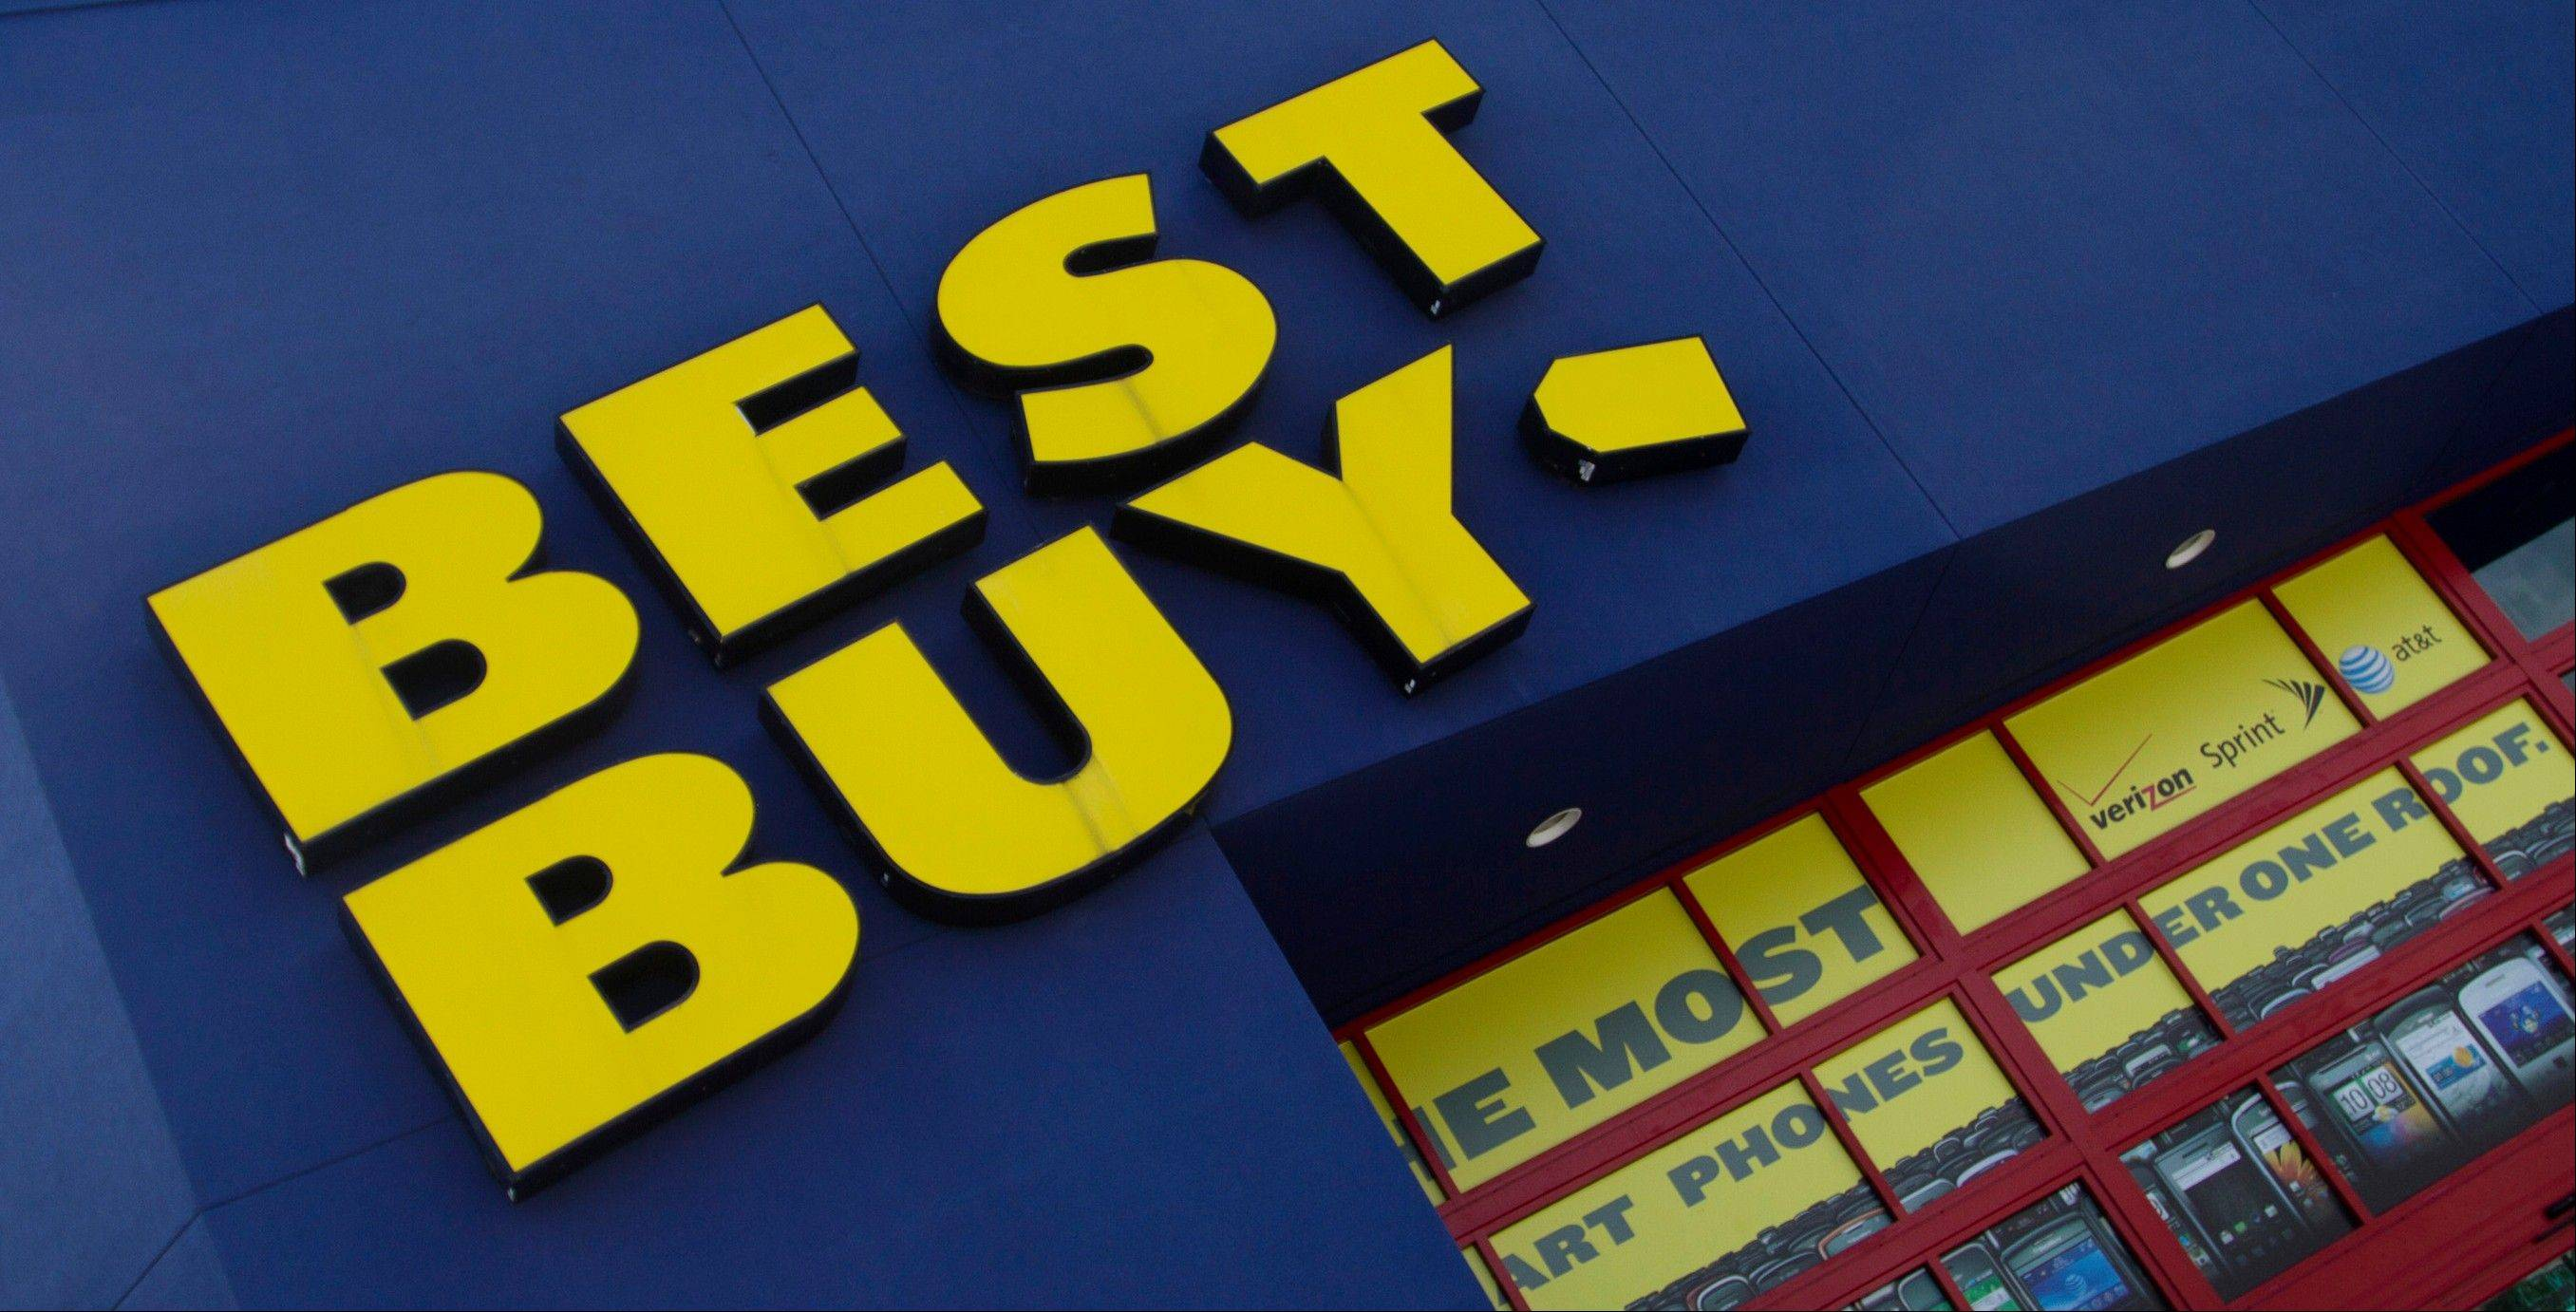 Best Buy said Thursday that a key sales barometer fell during the holiday shopping season, stung partly by weakness in the U.S. and a retail environment heavy on promotions.Its stock dropped more than 28 percent in premarket trading.